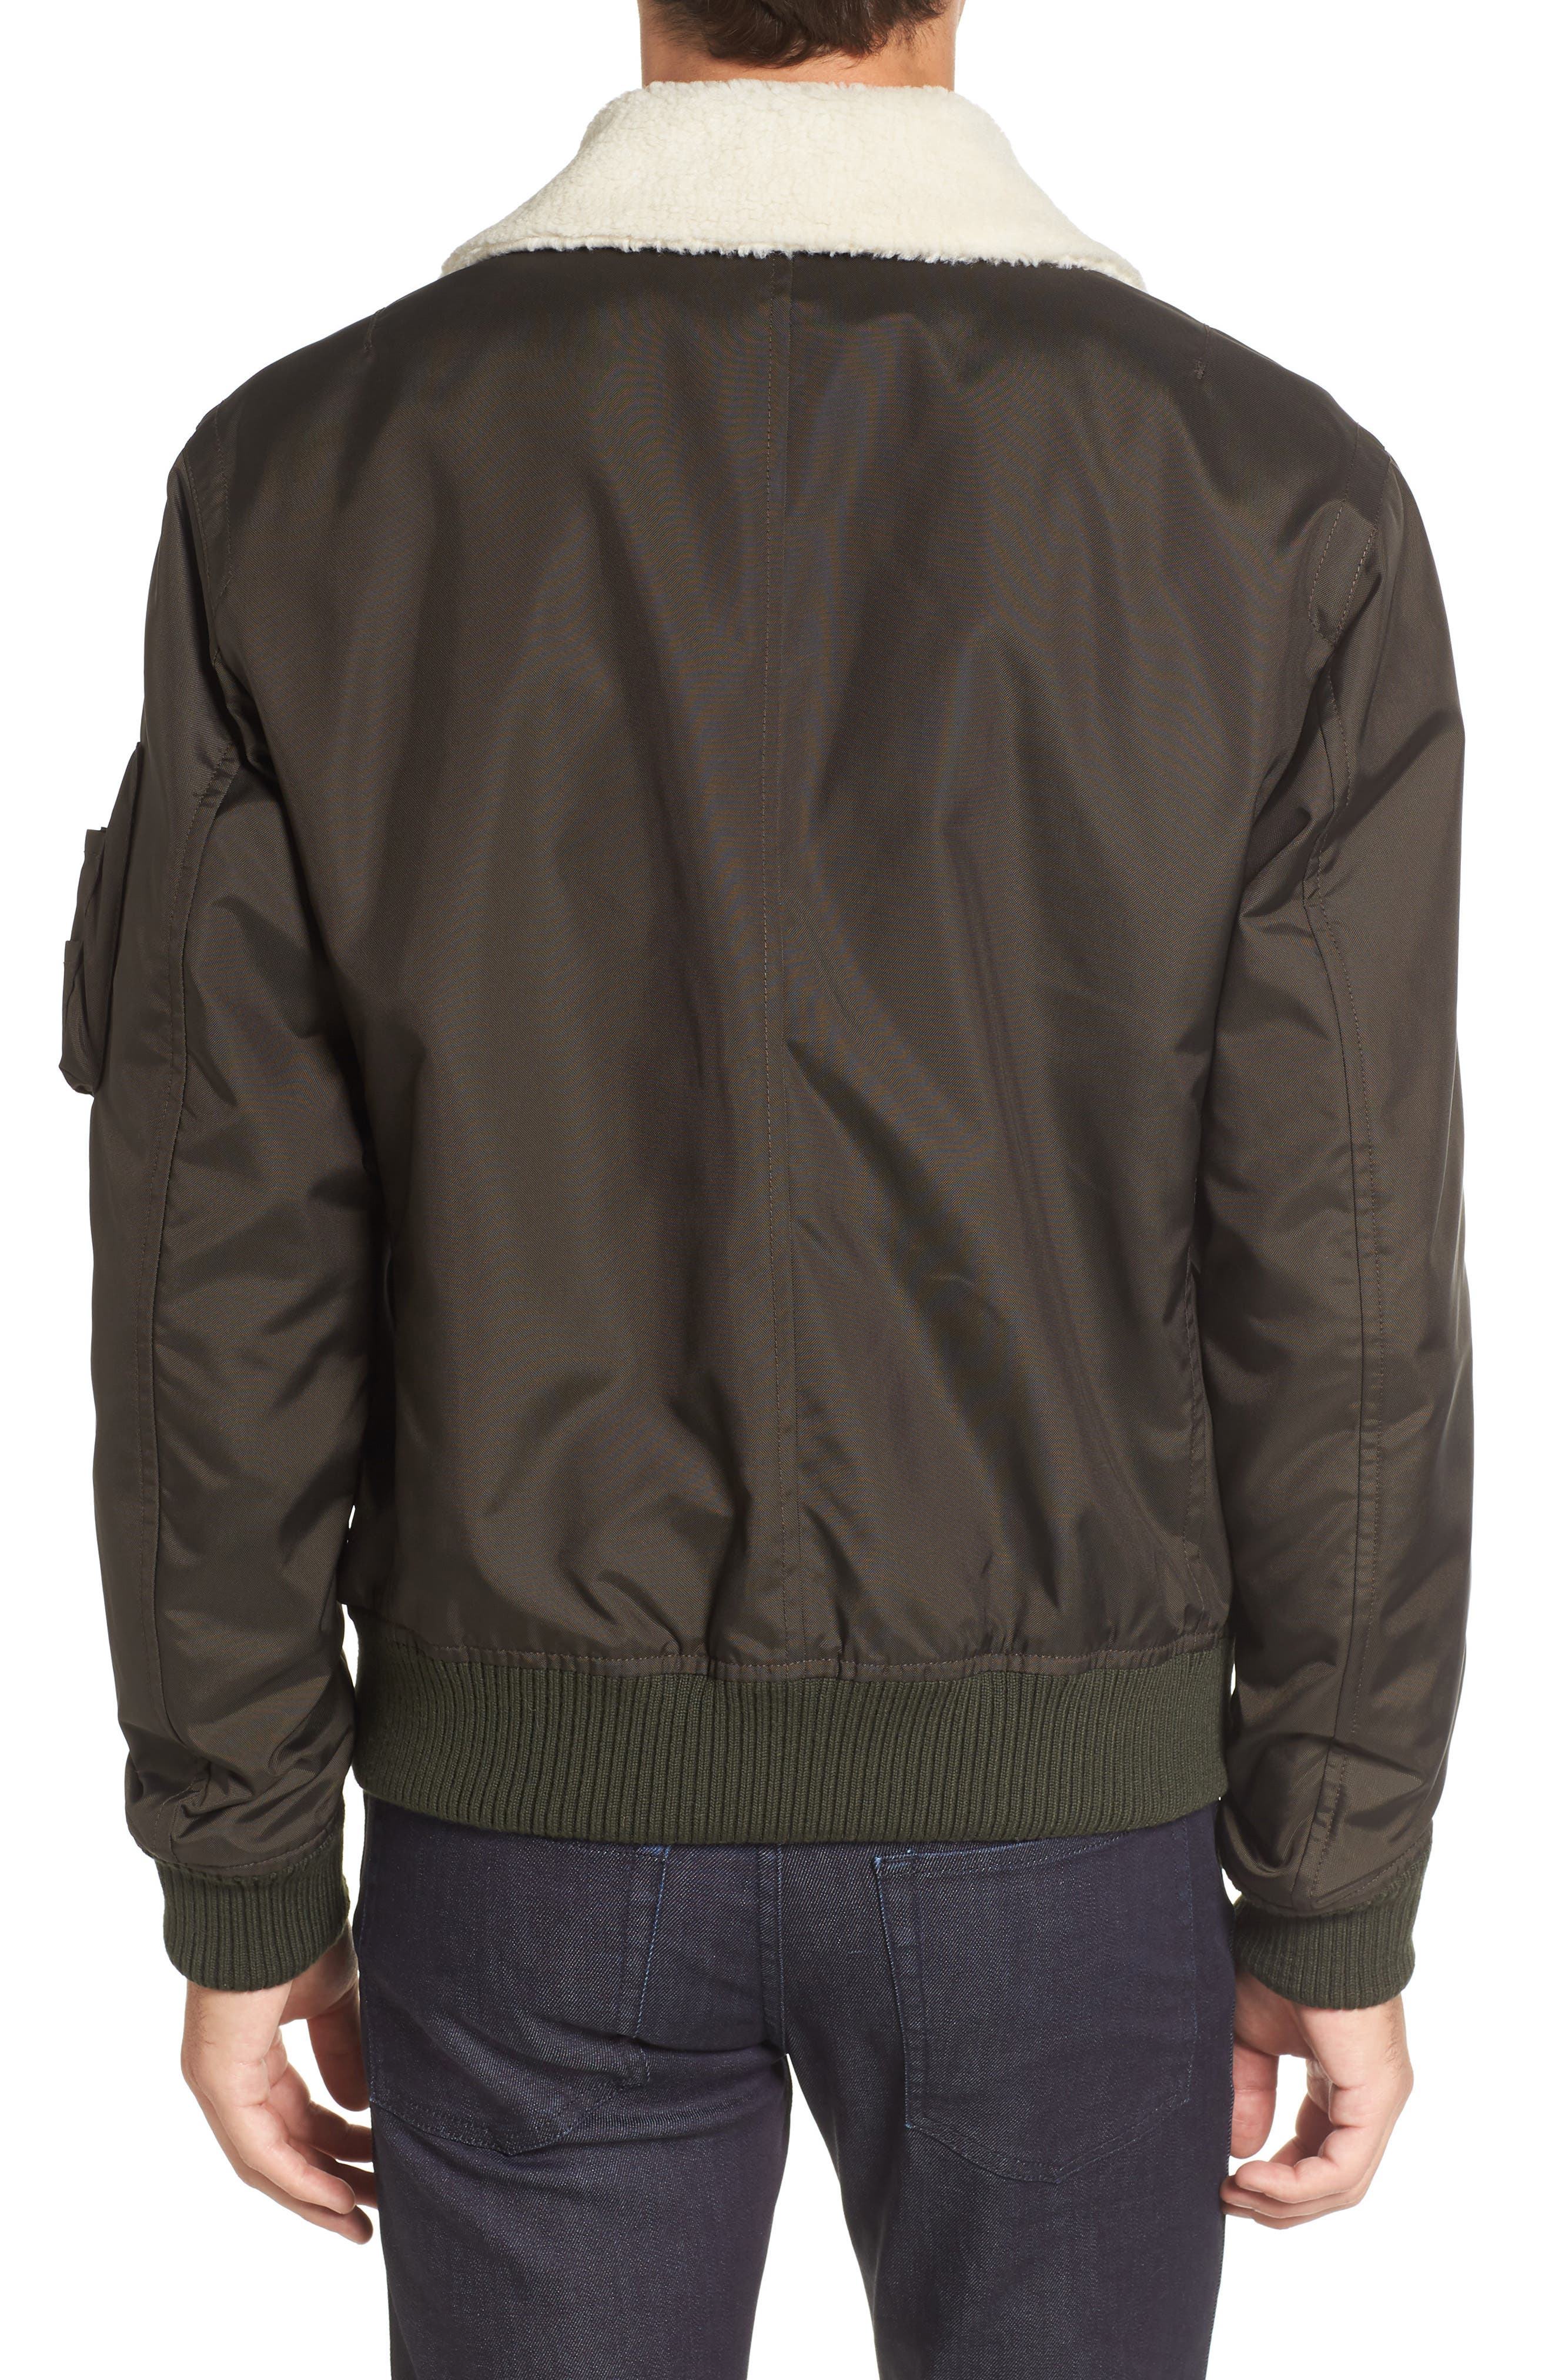 Cobra Aviator Jacket with Faux Fur Collar,                             Alternate thumbnail 2, color,